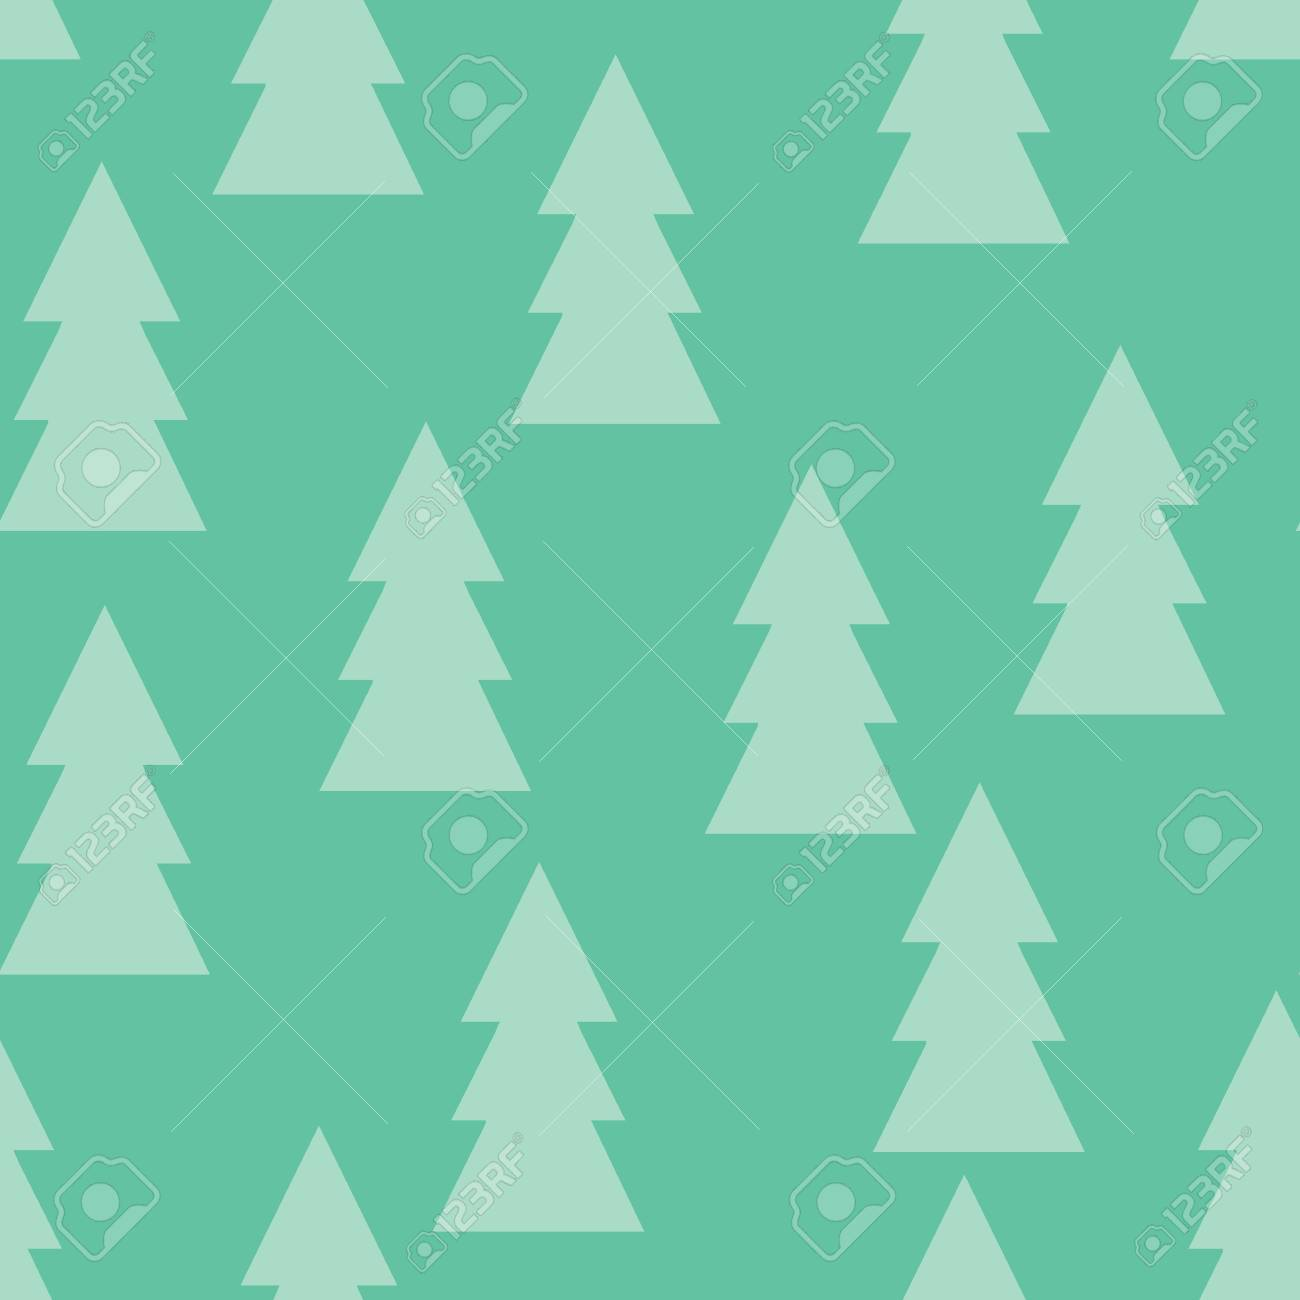 christmas pattern with trees. abstract winter forest. simple